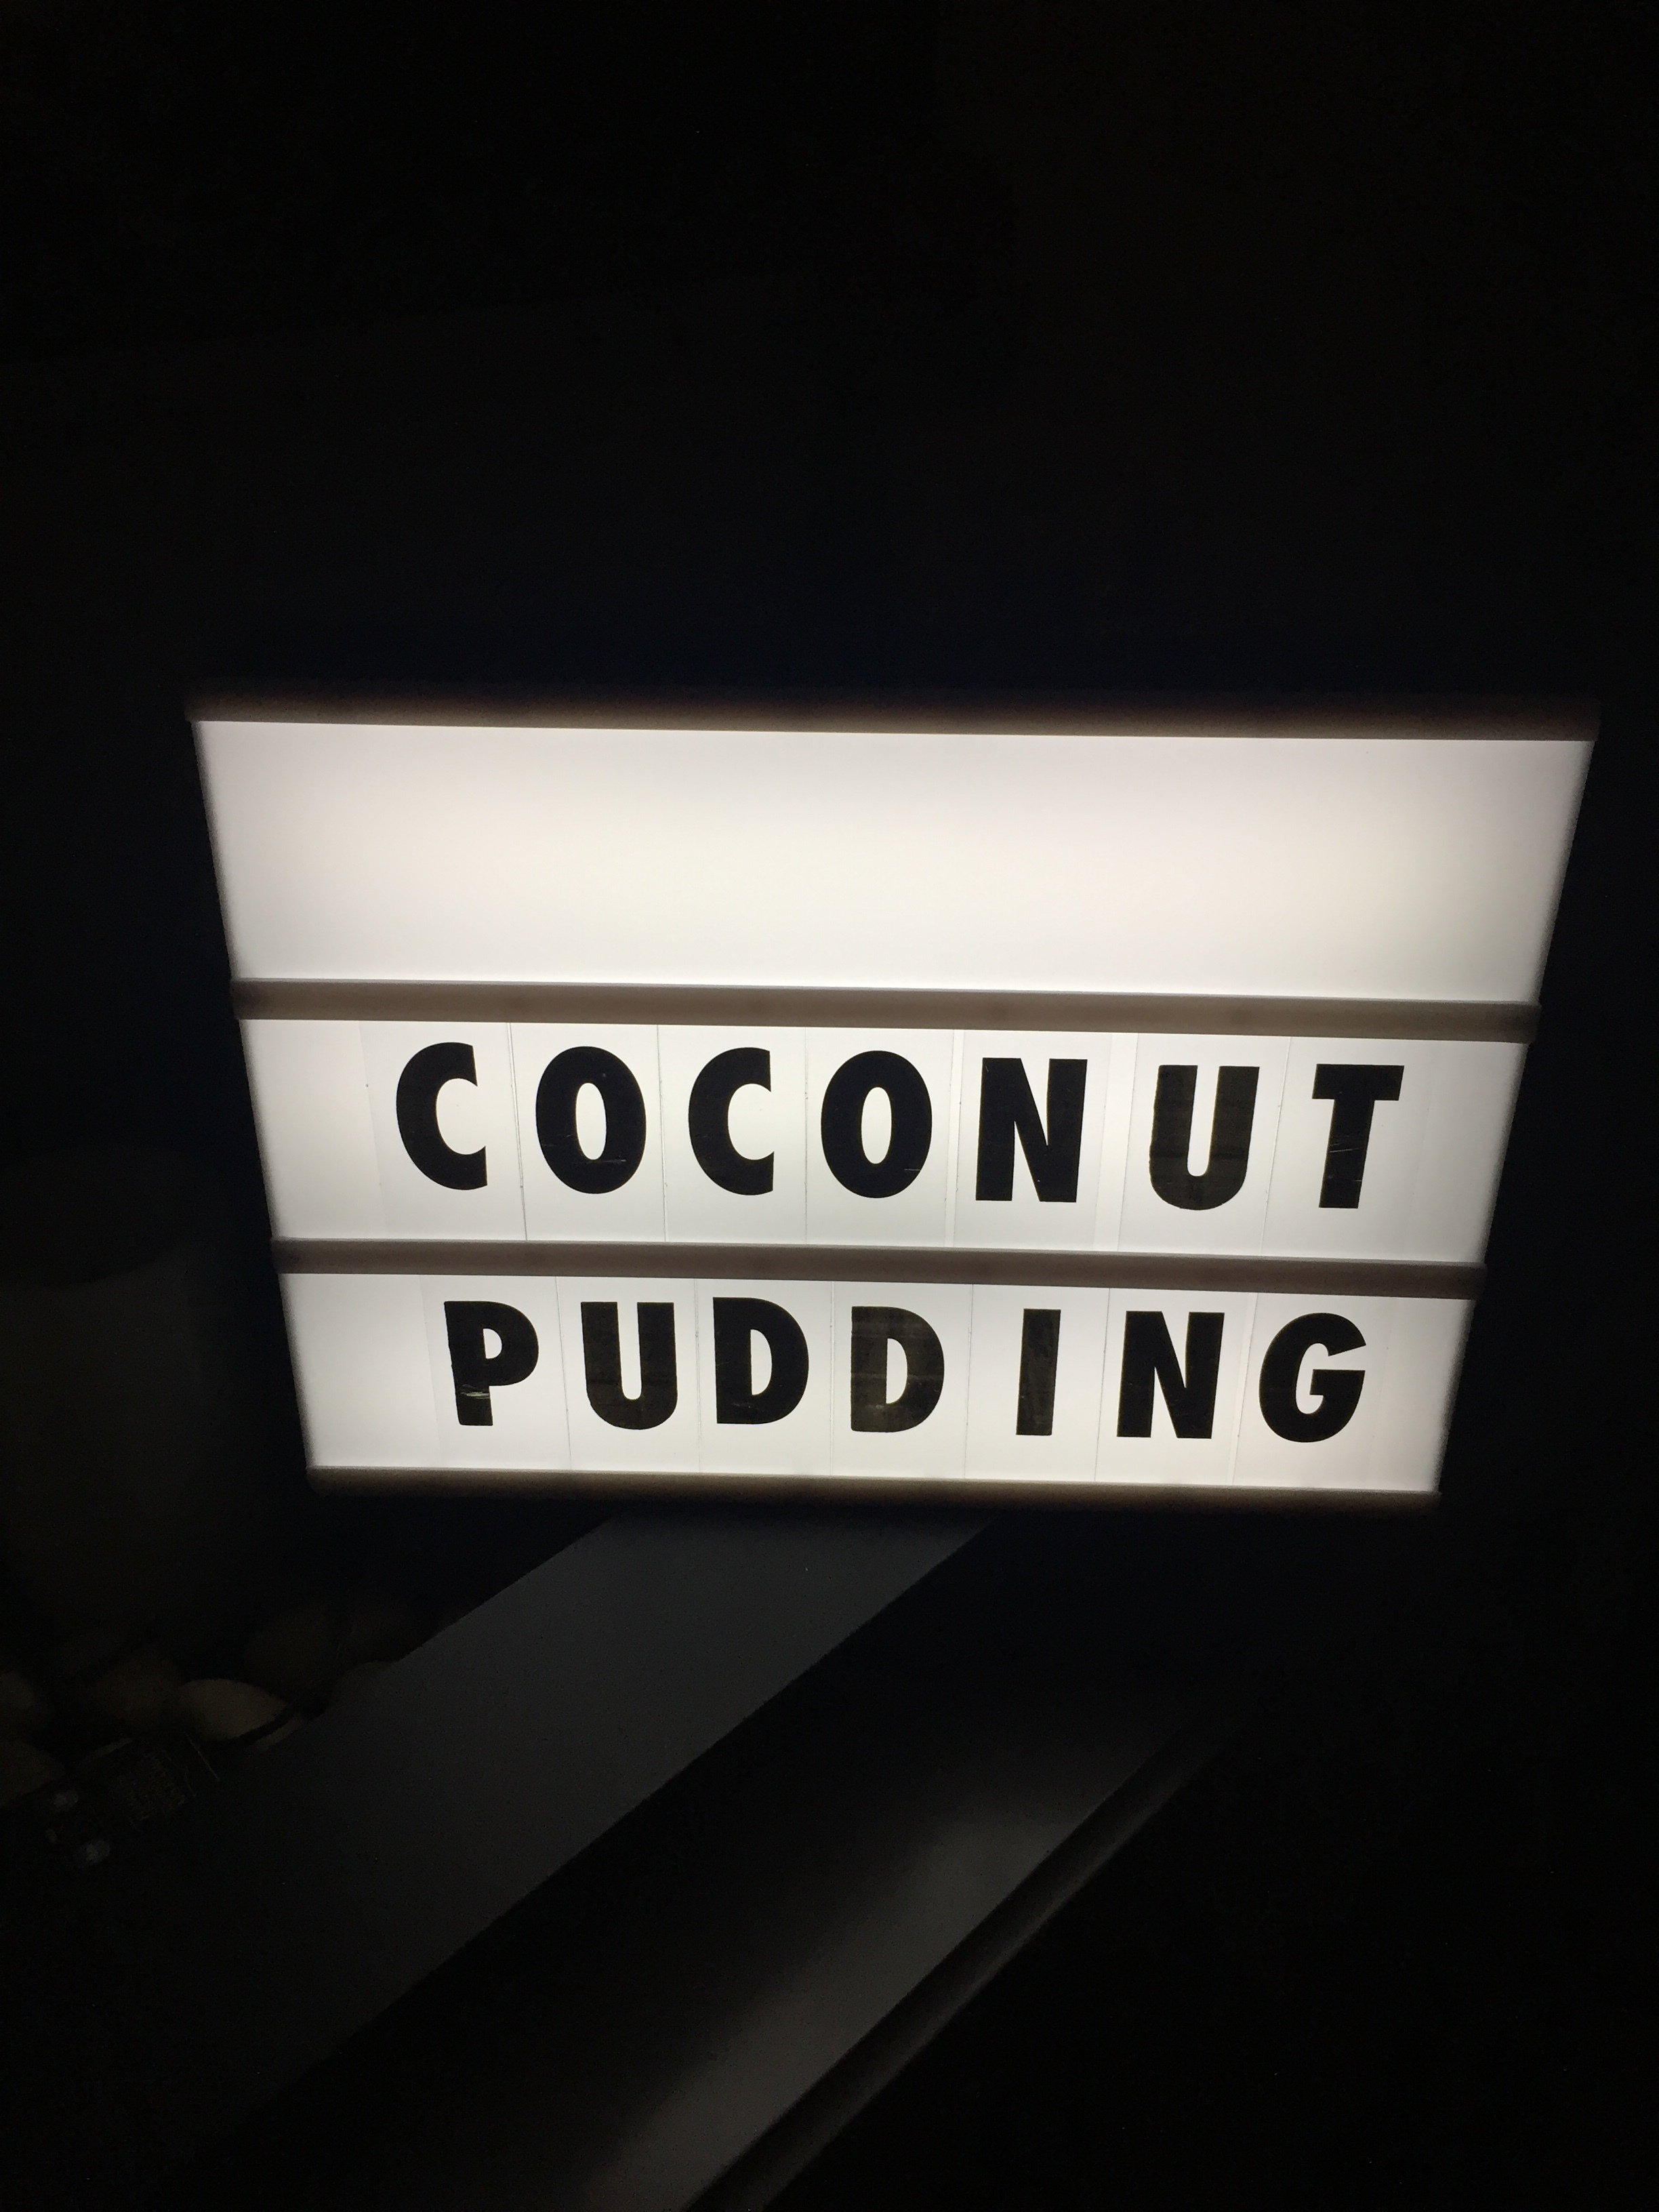 104CoconutPudding1.JPG